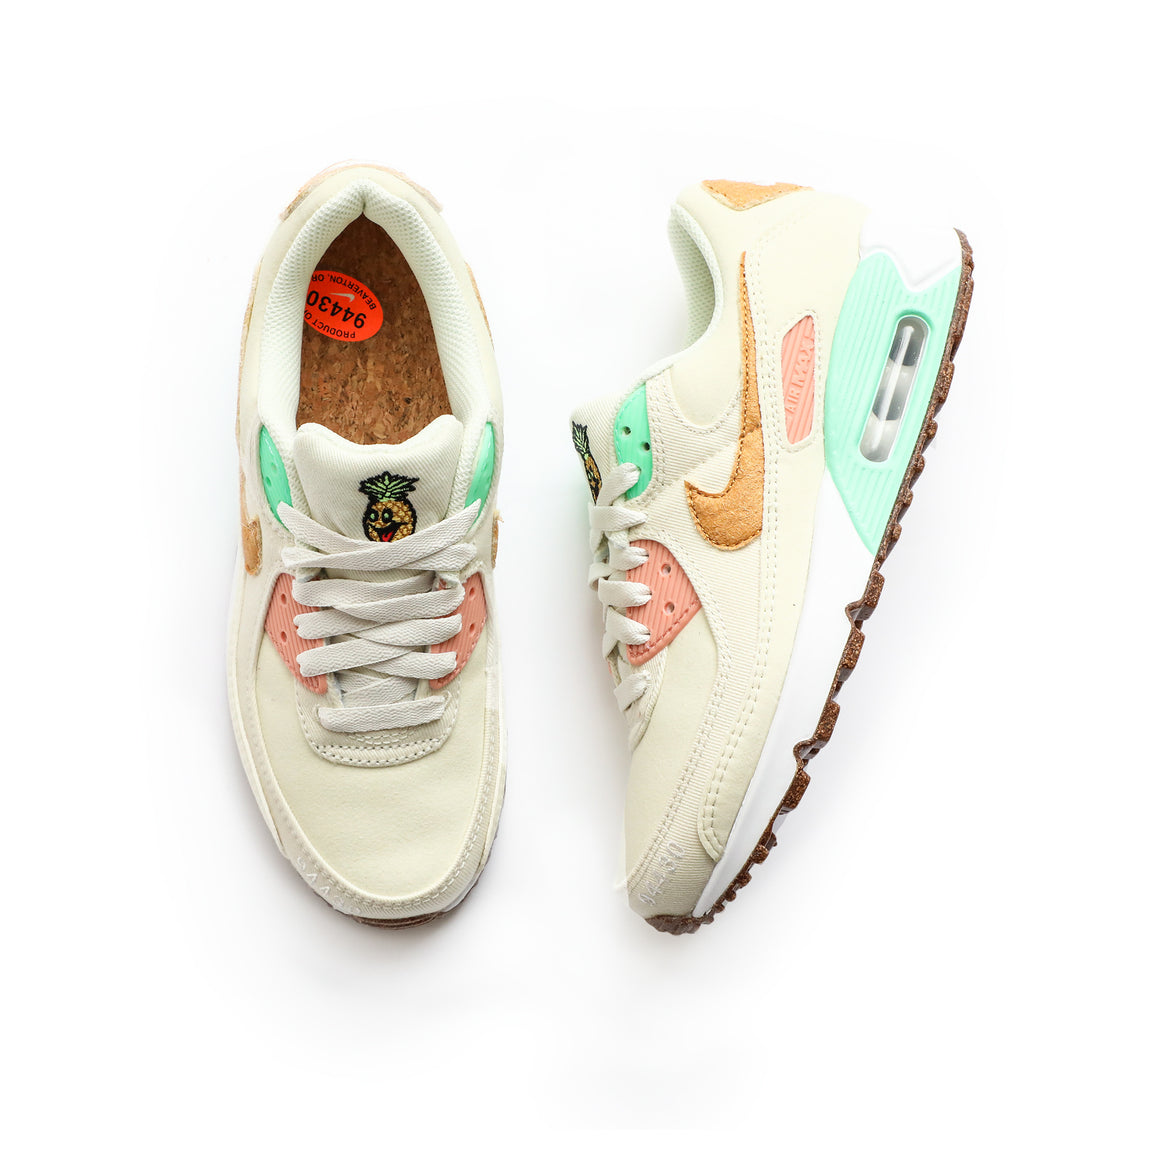 Nike Women's Air Max 90 LX (Coconut Milk/Metallic Gold) - Nike Women's Air Max 90 LX (Coconut Milk/Metallic Gold) -